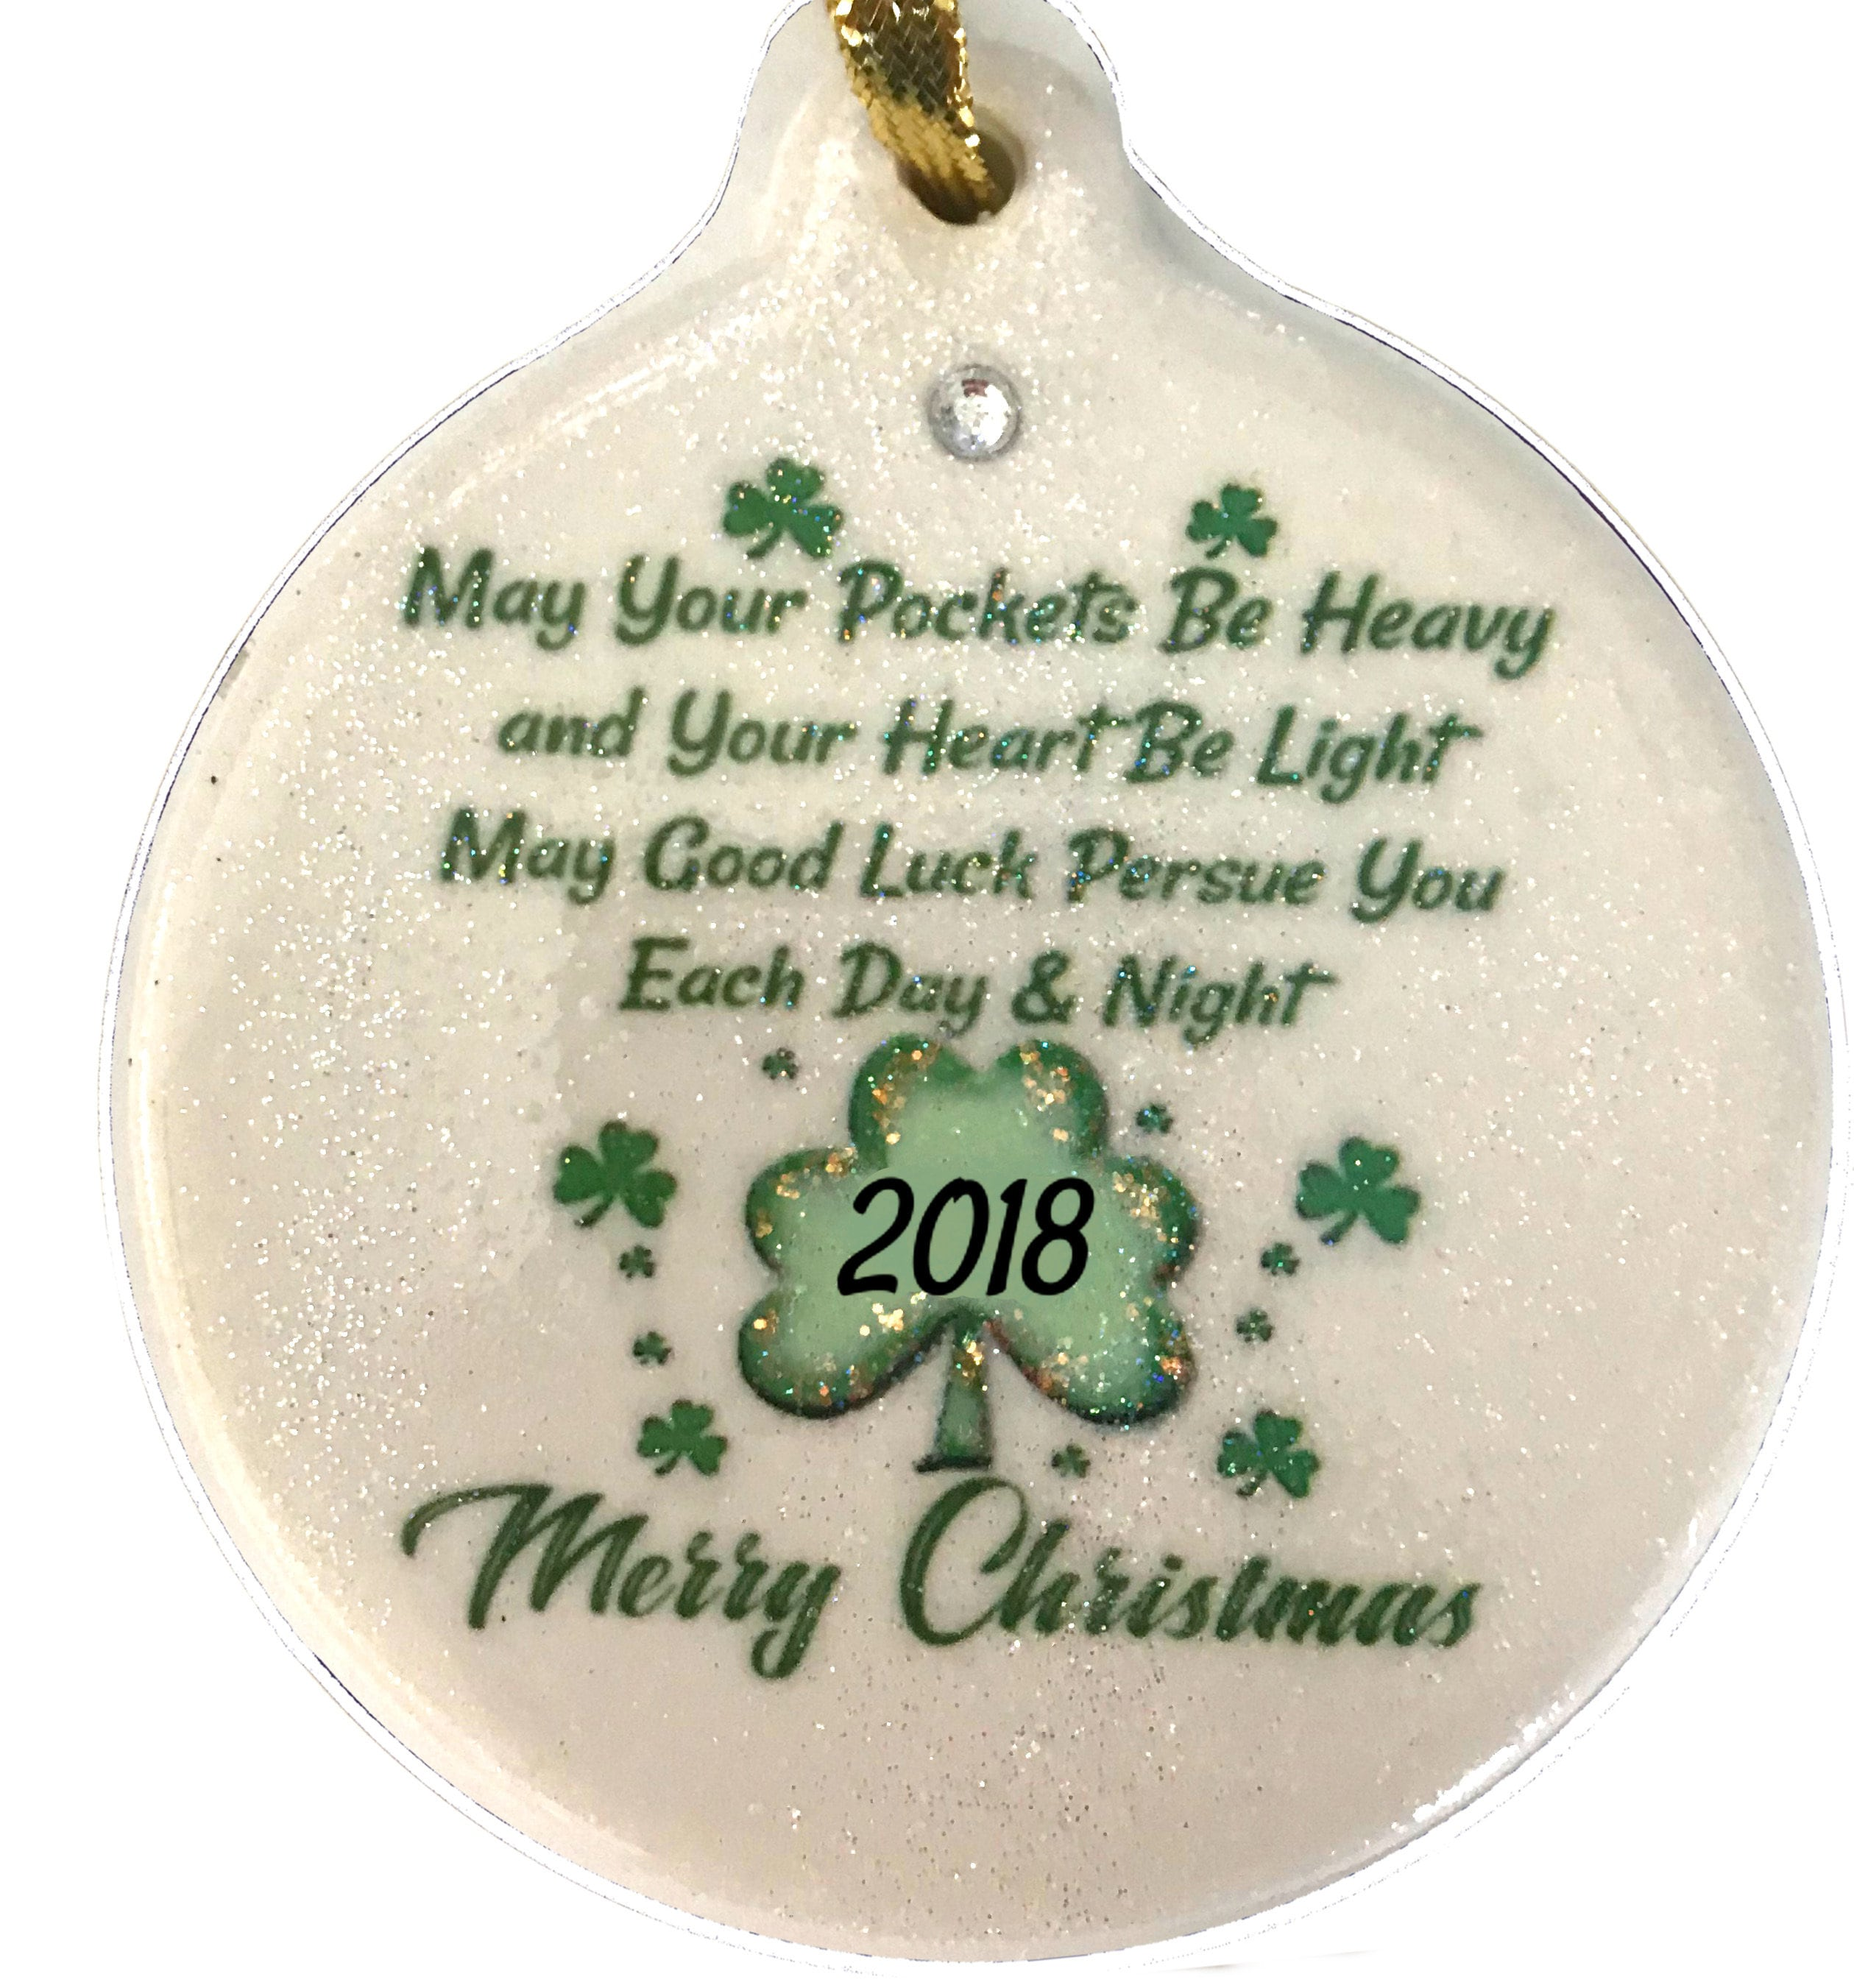 Irish Christmas 2018 Blessing Porcelain Ornament Rhinestone | Etsy